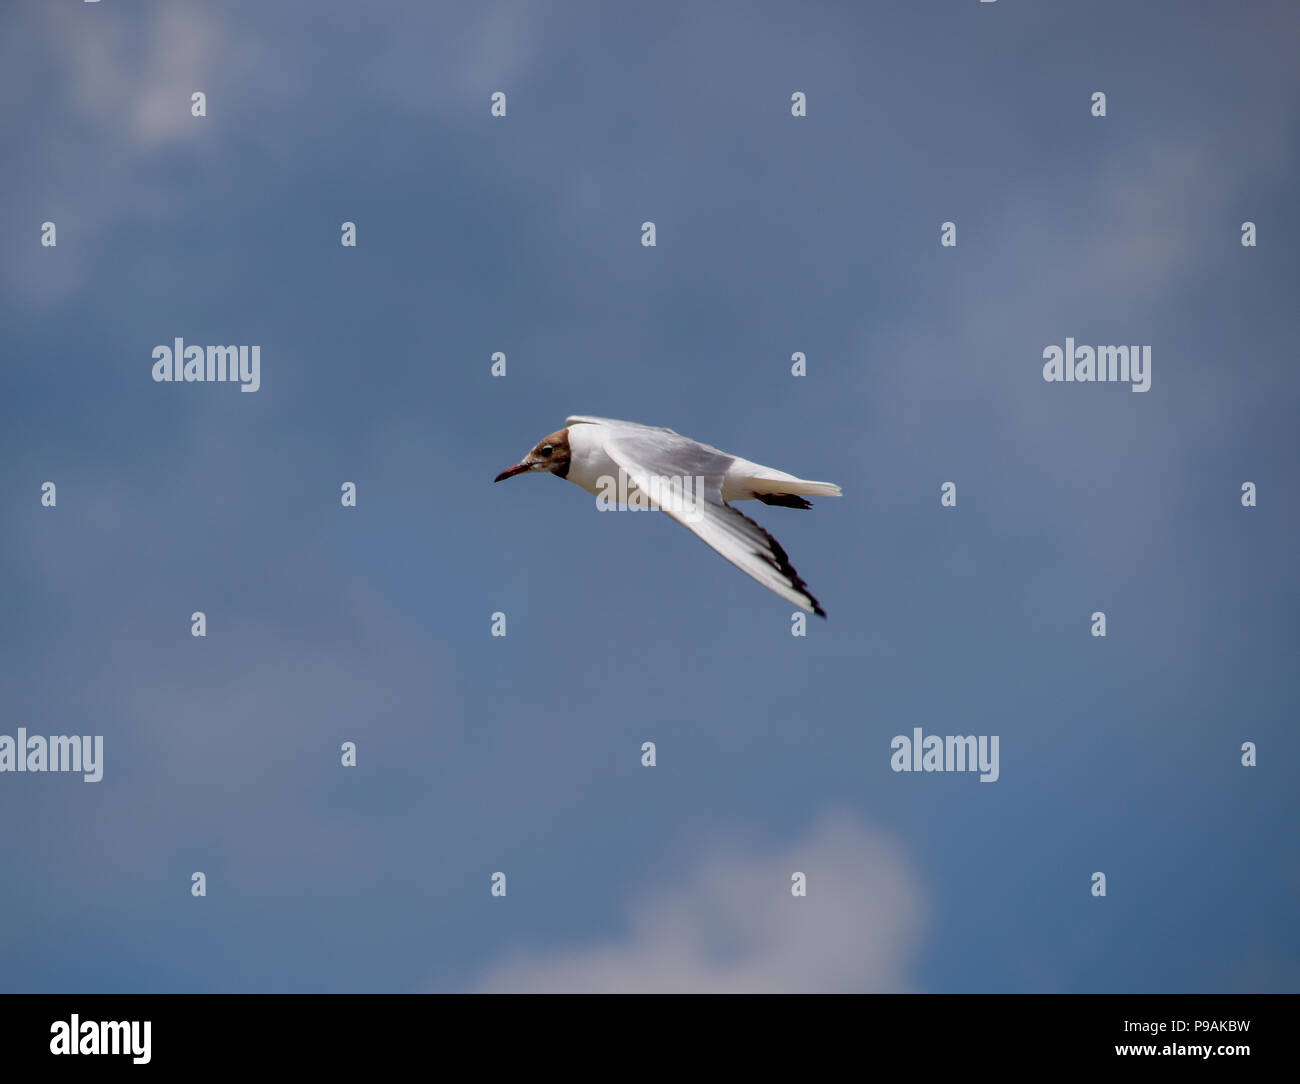 df79fbe6 Sea gull flying in the sky. Seagull ordinary - Stock Image